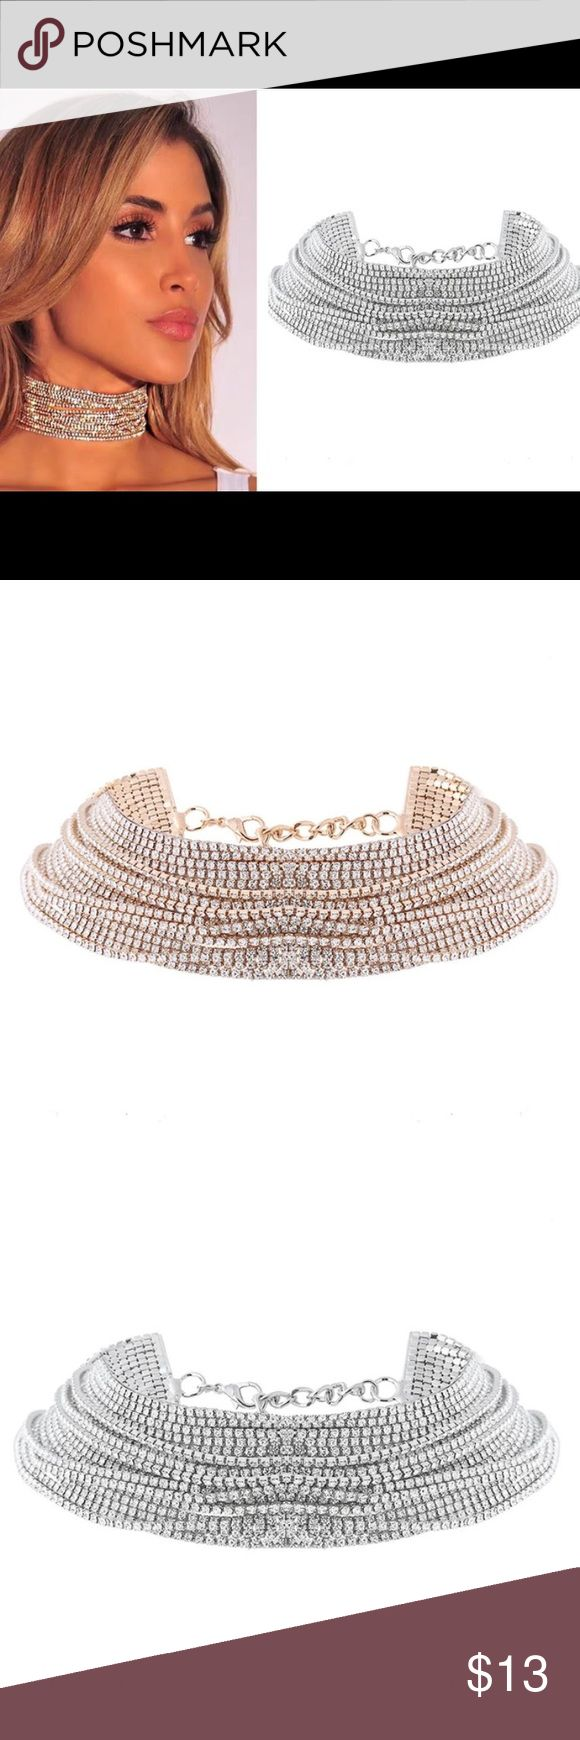 Maxi linked rhinestone choker. Maci linked choker. Made to fit fitted on neck. Luxury necklace 36cm Jewelry Necklaces